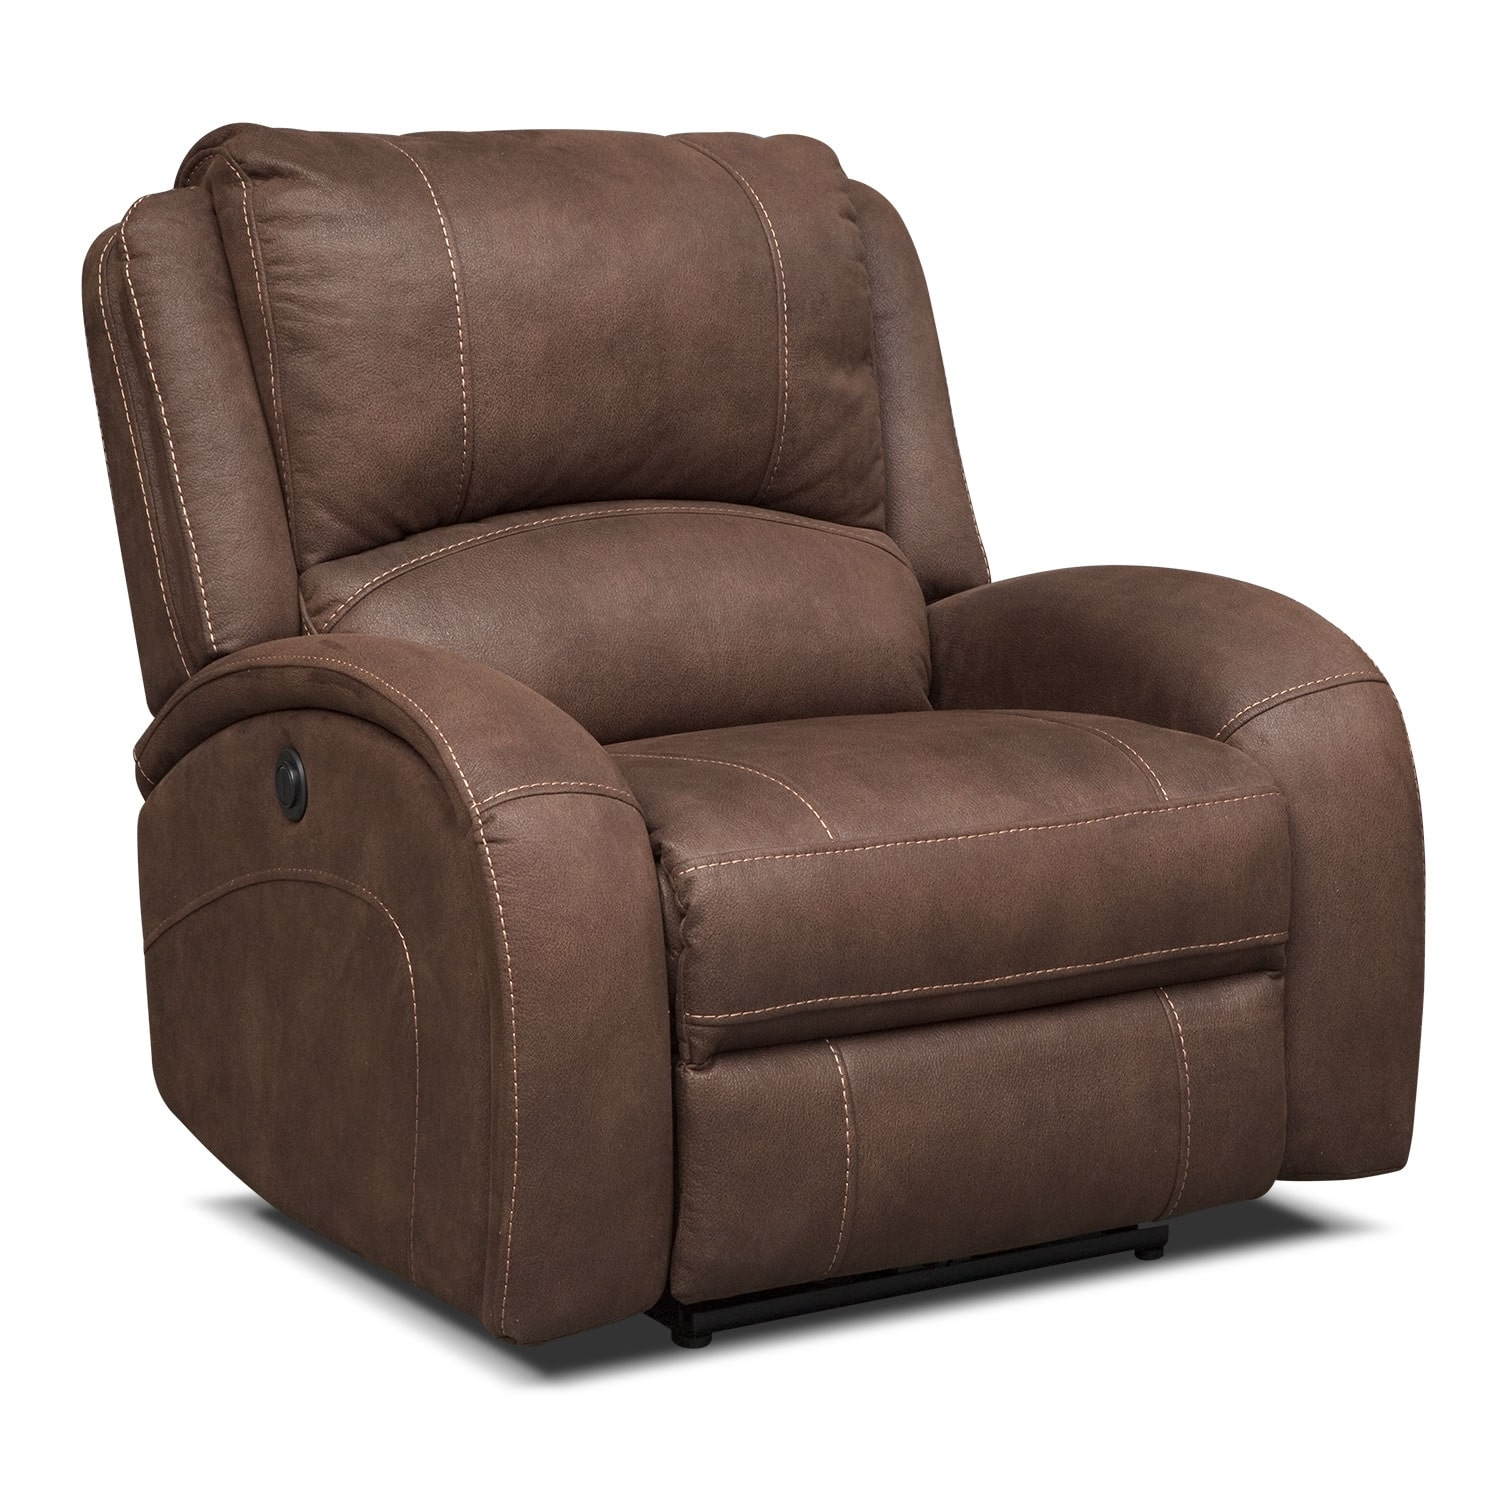 Ambrose Power Recliner